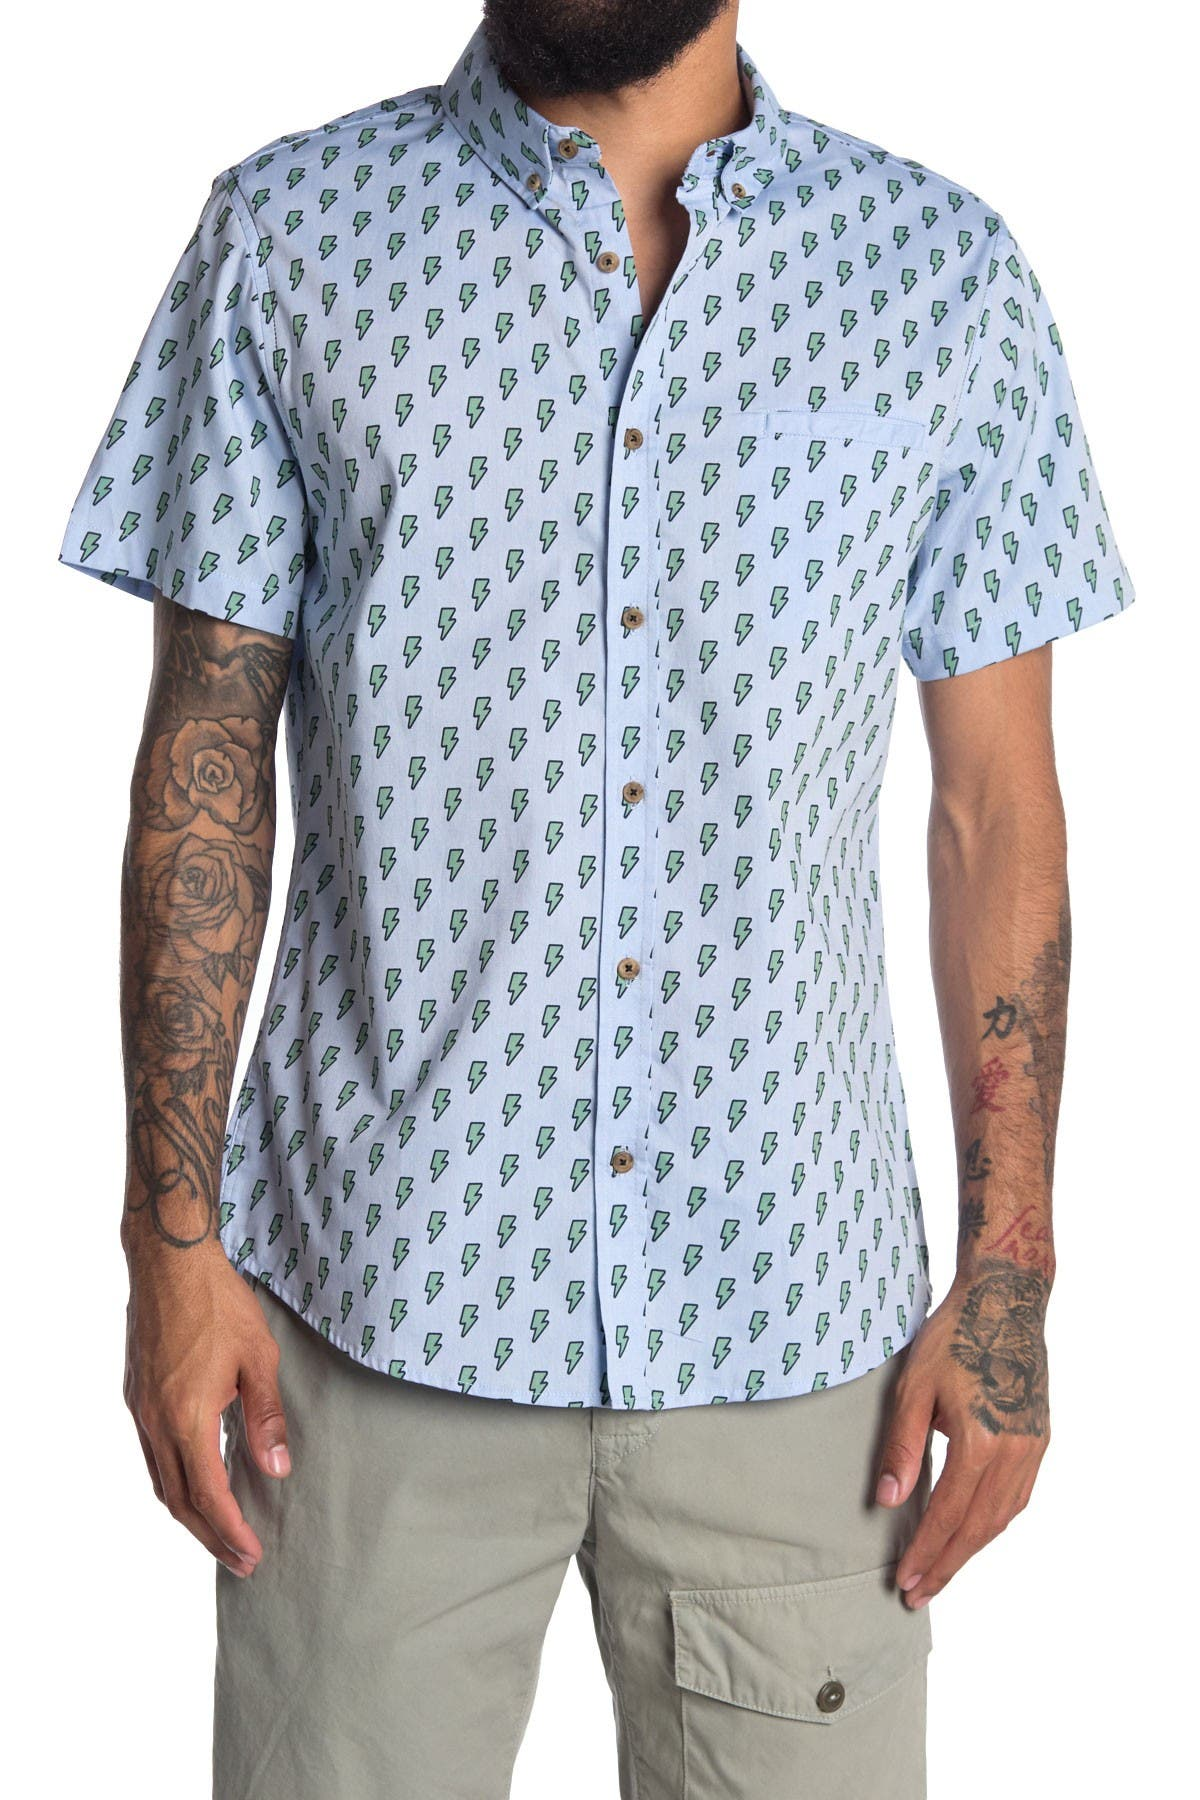 Image of Sovereign Code Dover Patterned Button Up Shirt